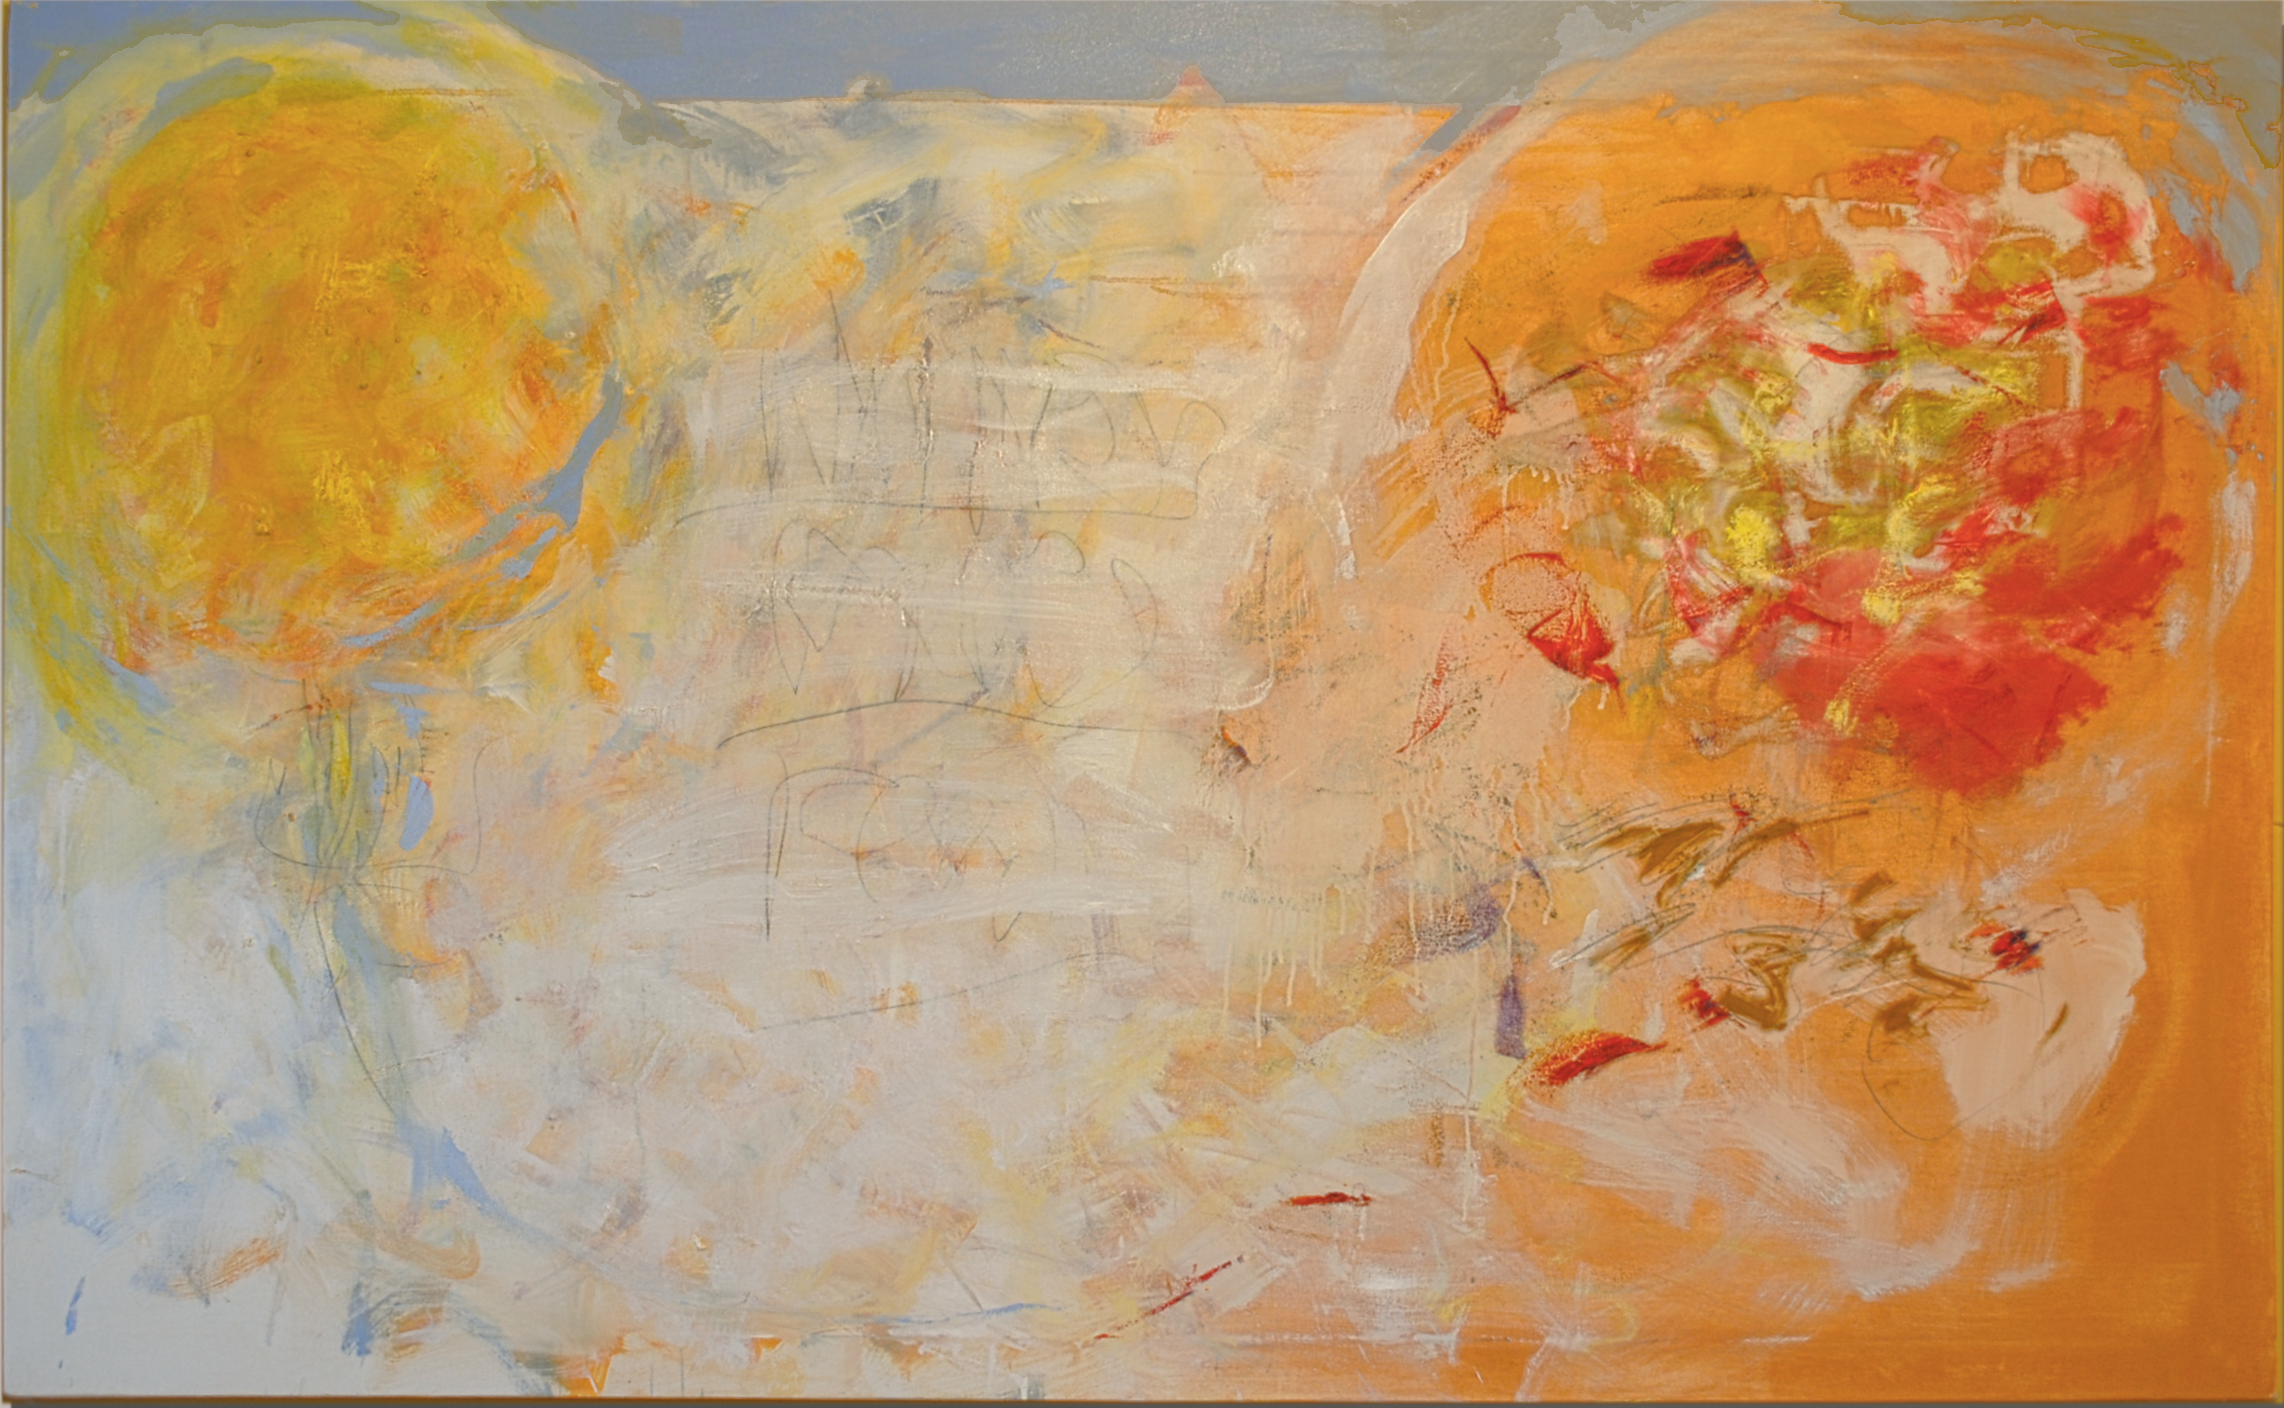 "Narcissus Echo Foxtrot, Oil, clay, tumeric, charcoal on canvas. 46"" h x 74"" w"